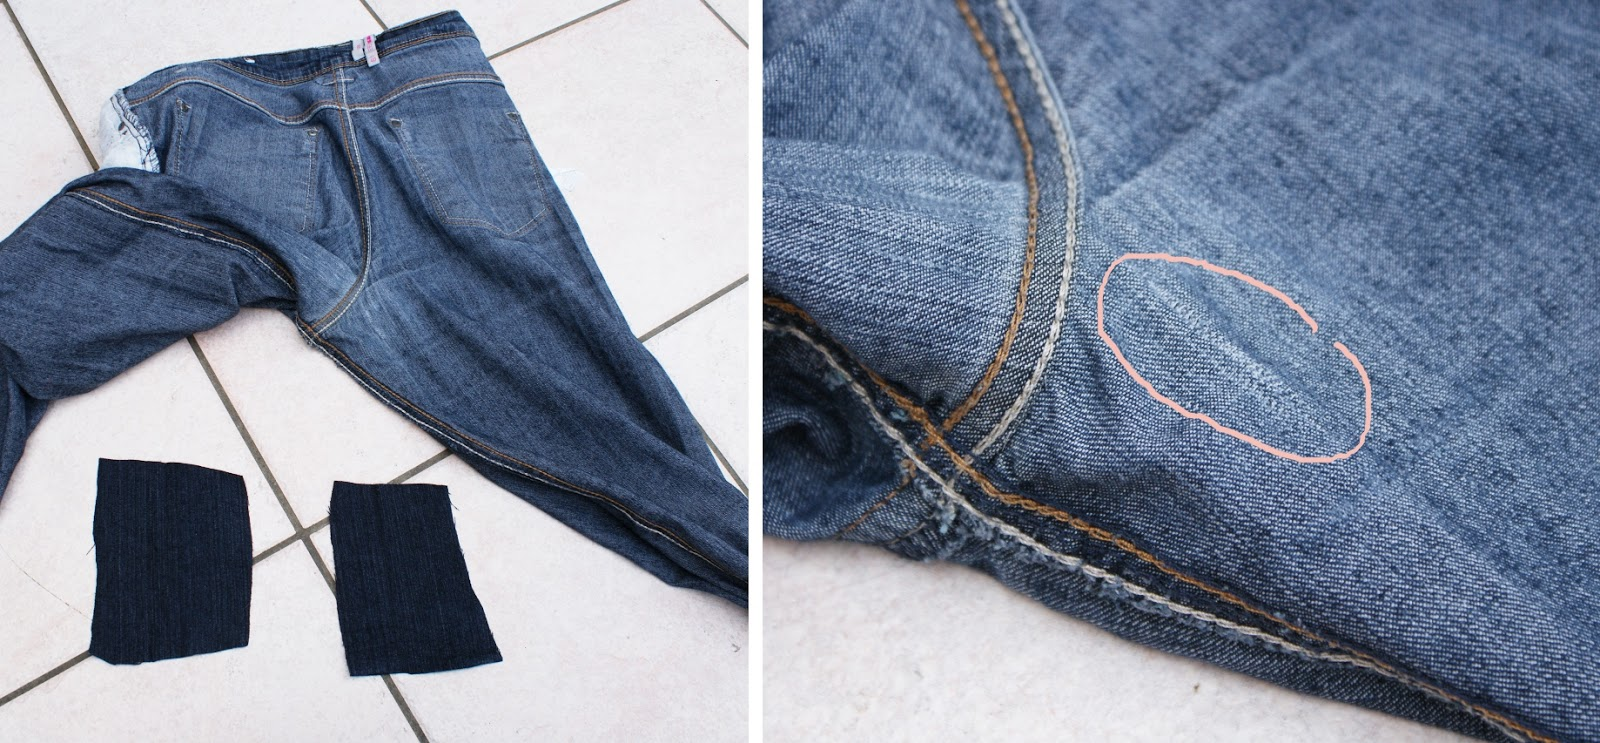 How to sew a hole in jeans